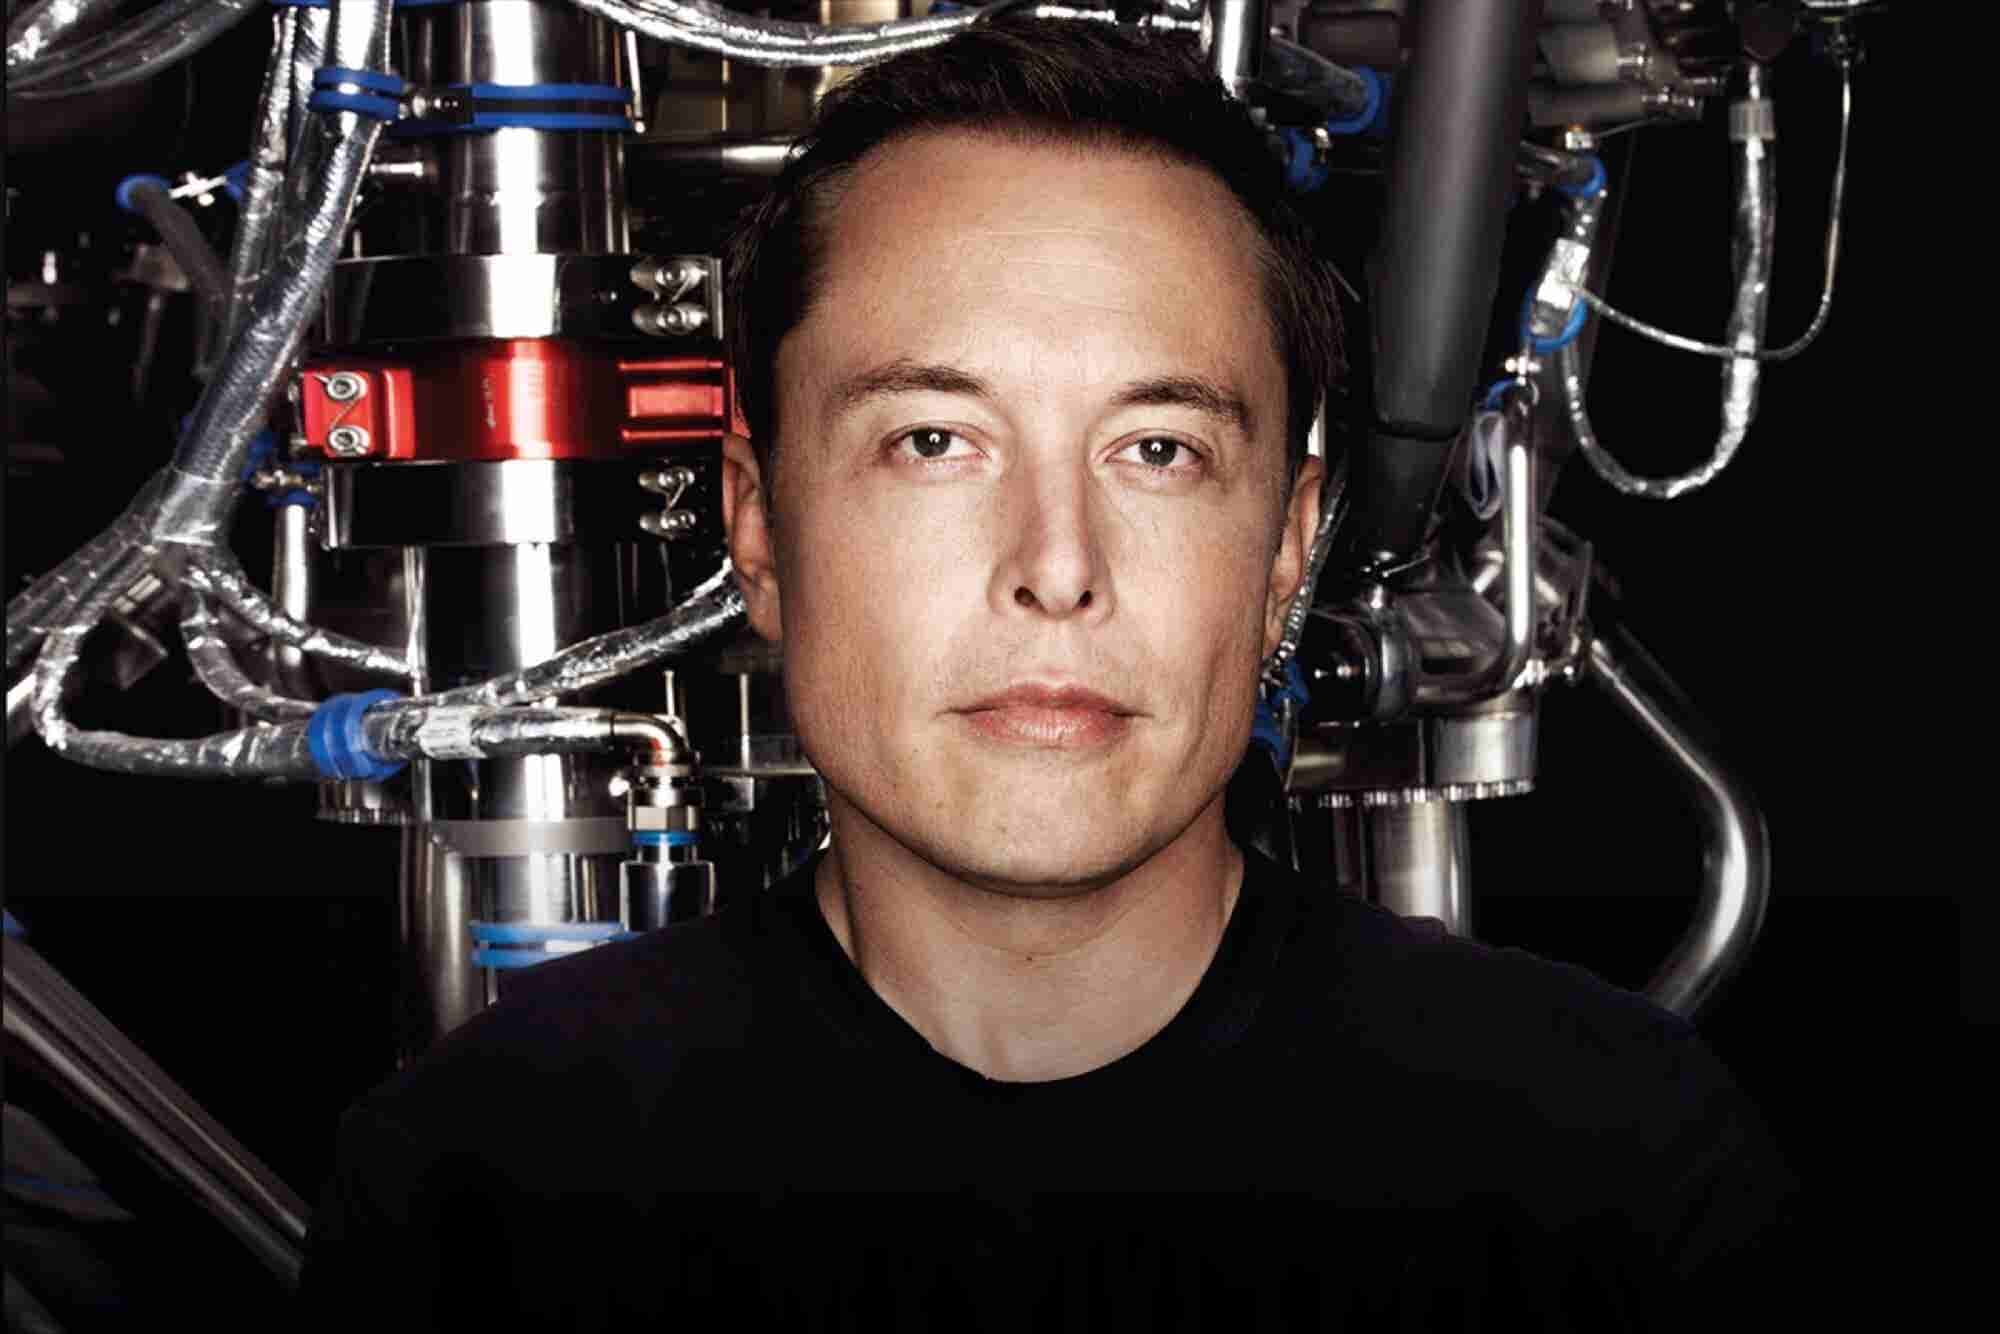 From an Elon Musk Bio to Malcolm Gladwell's 'Blink', These 9 Books Are...